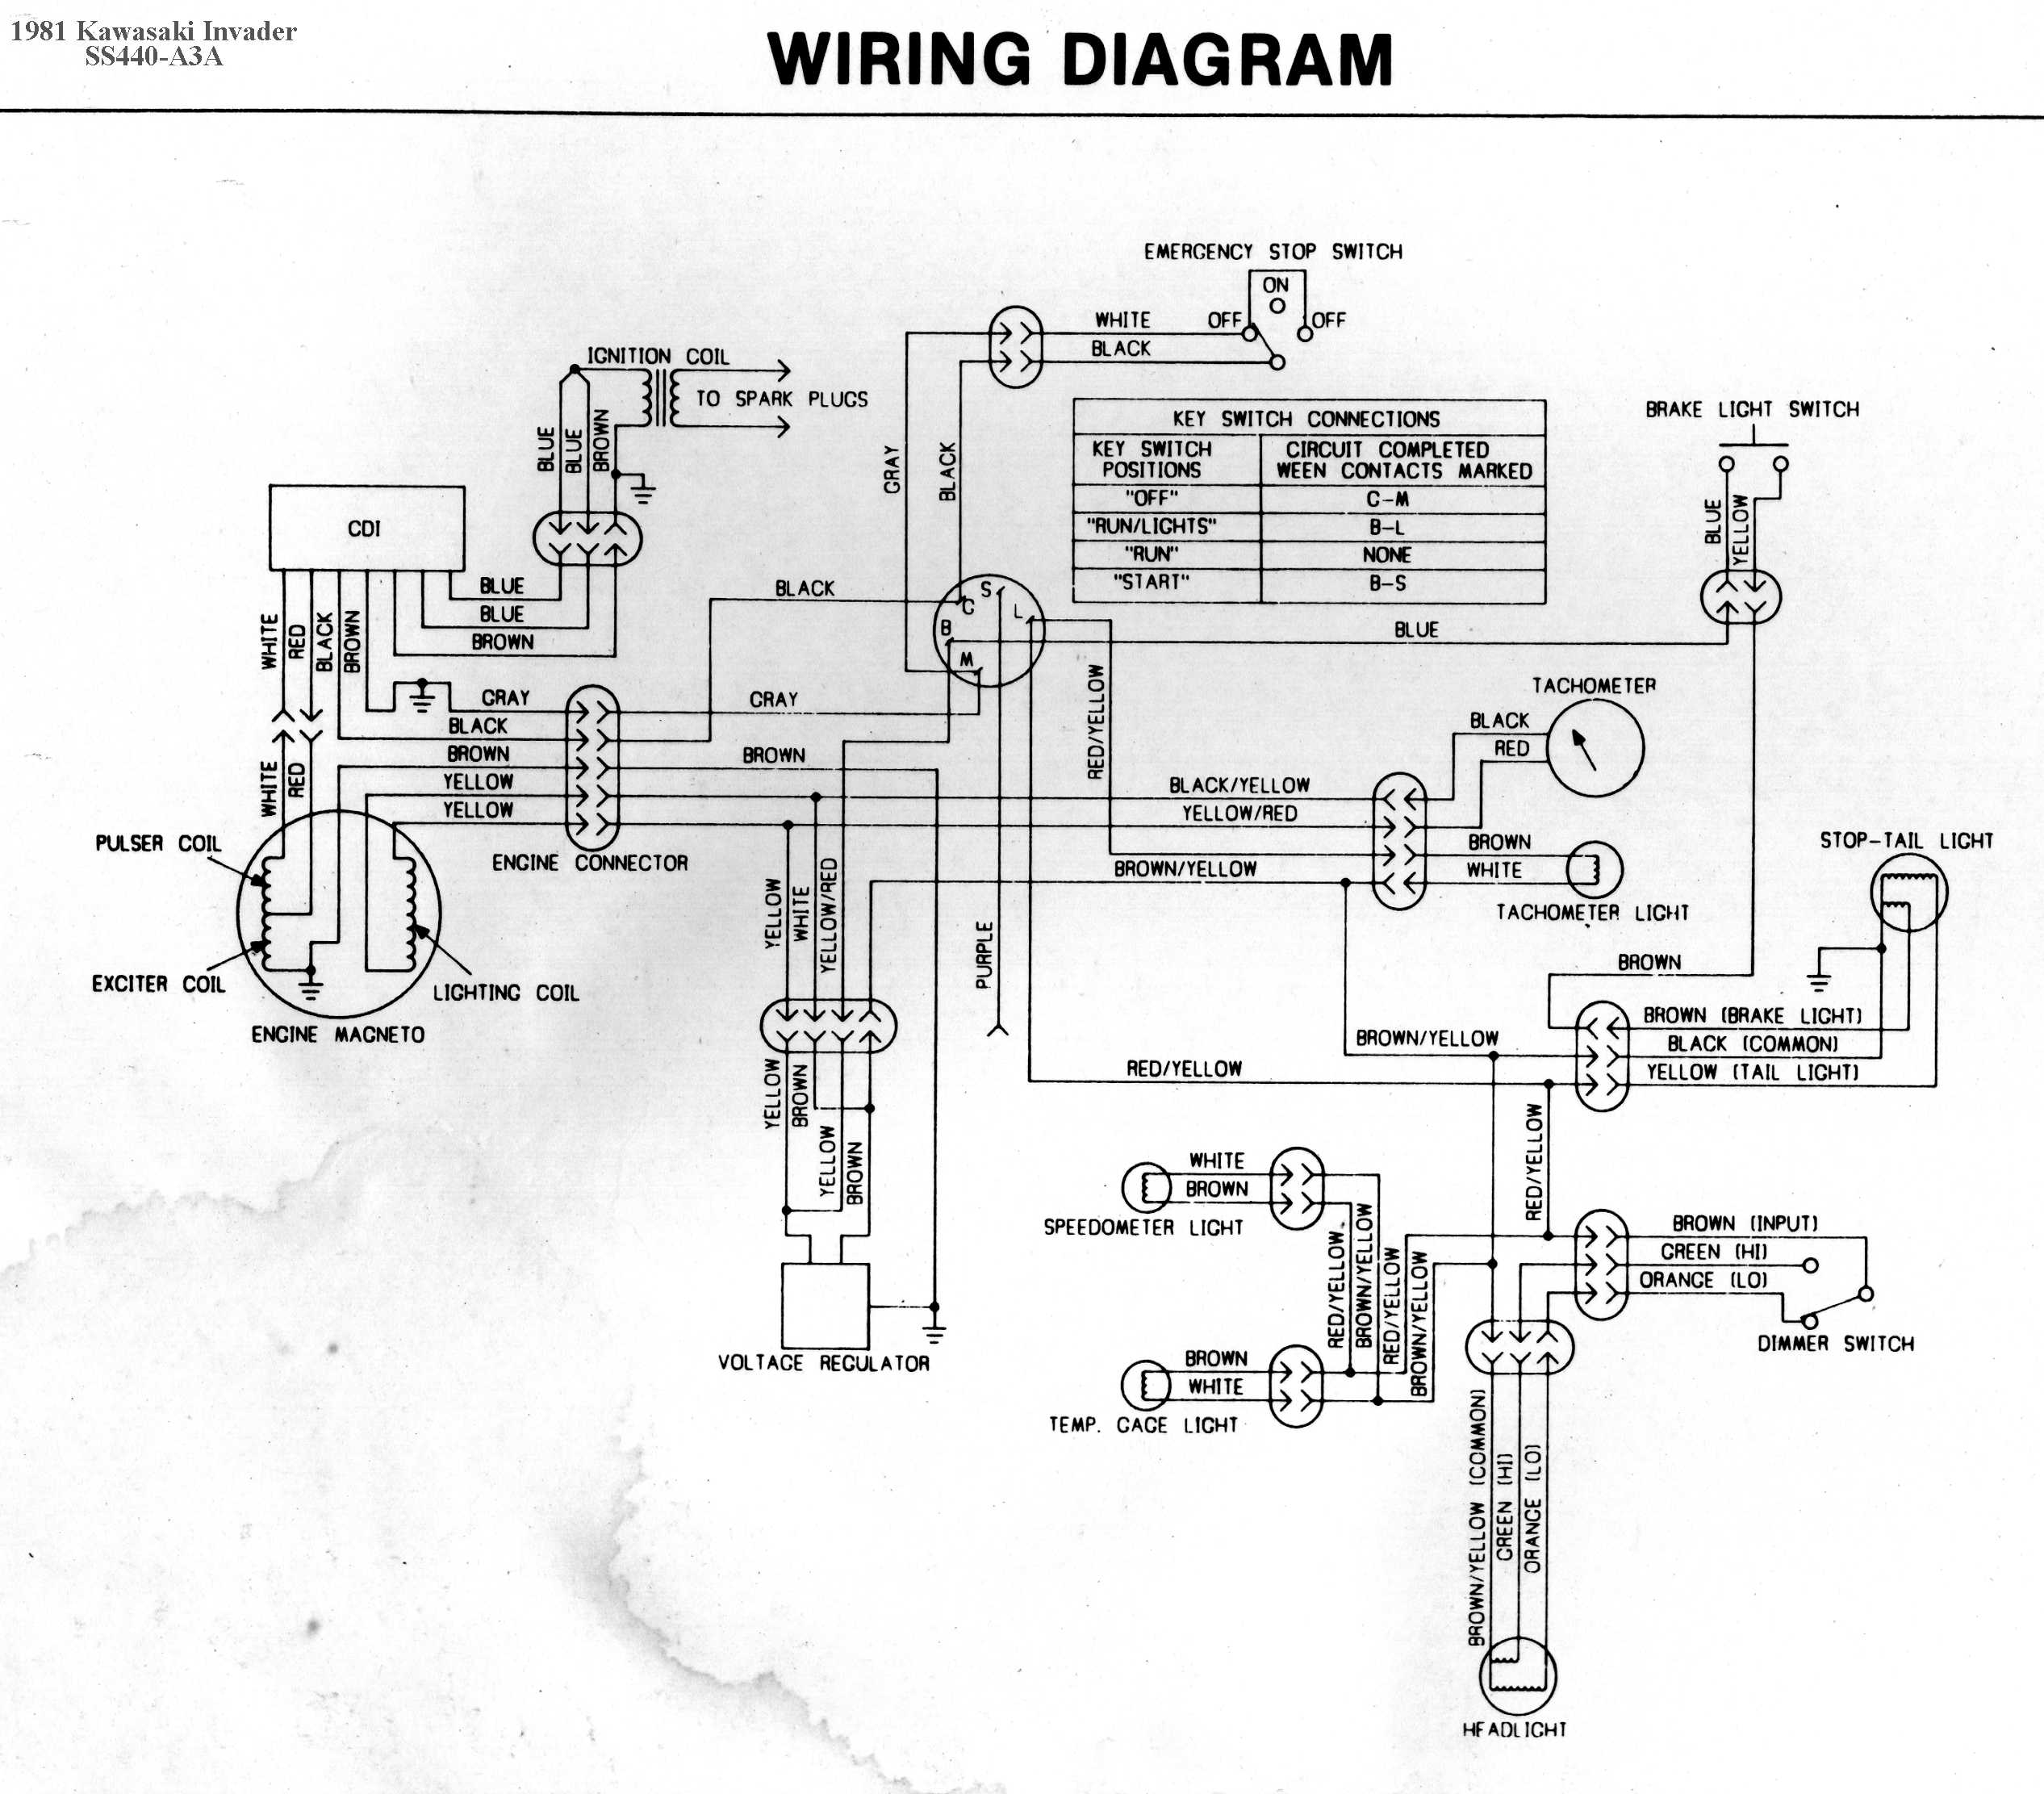 ss440a3a kawasaki invader snowmobile wiring diagrams 1980 kawasaki 440 ltd wiring diagram at bakdesigns.co